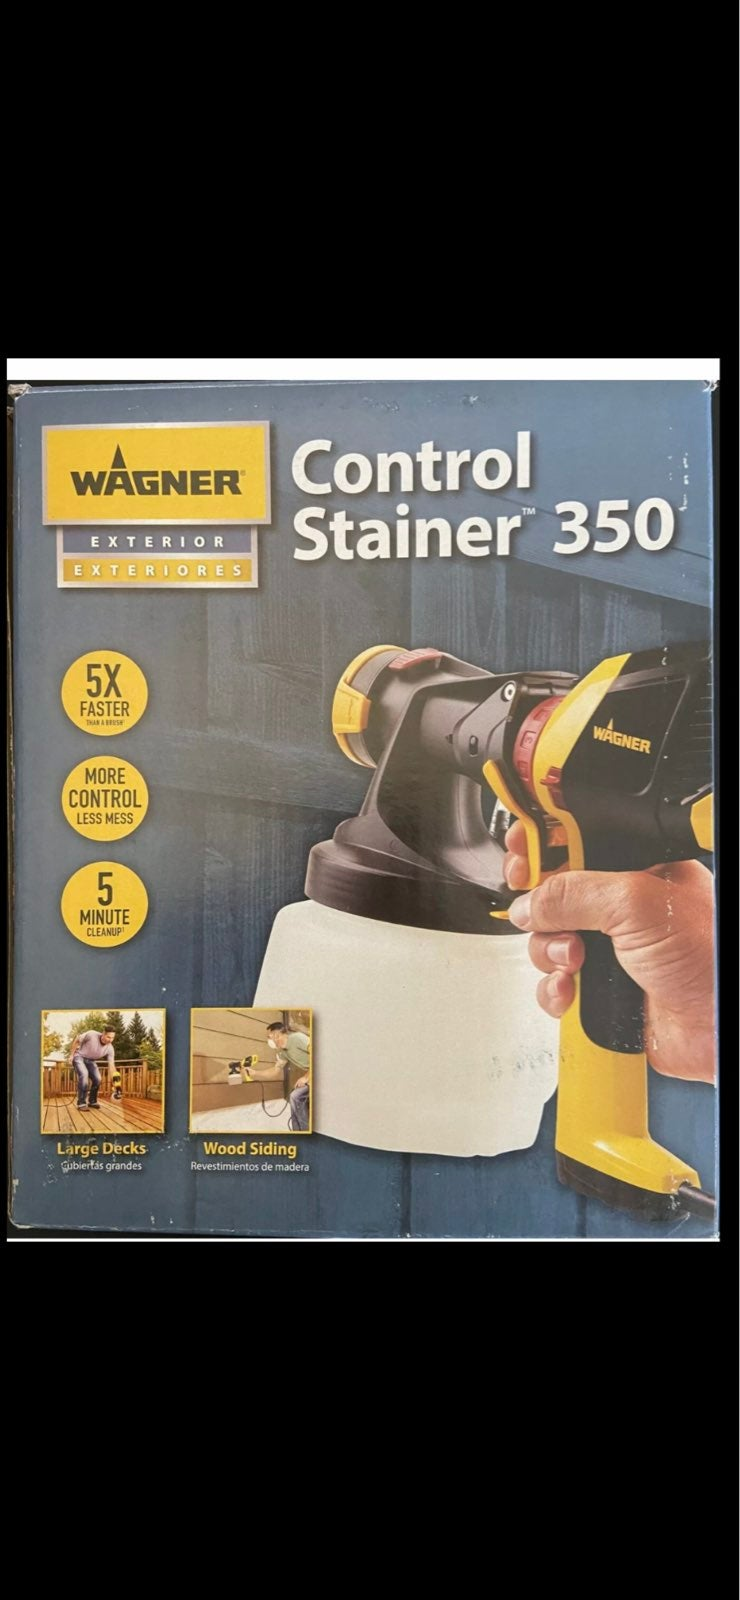 Wagner Control Stainer 350